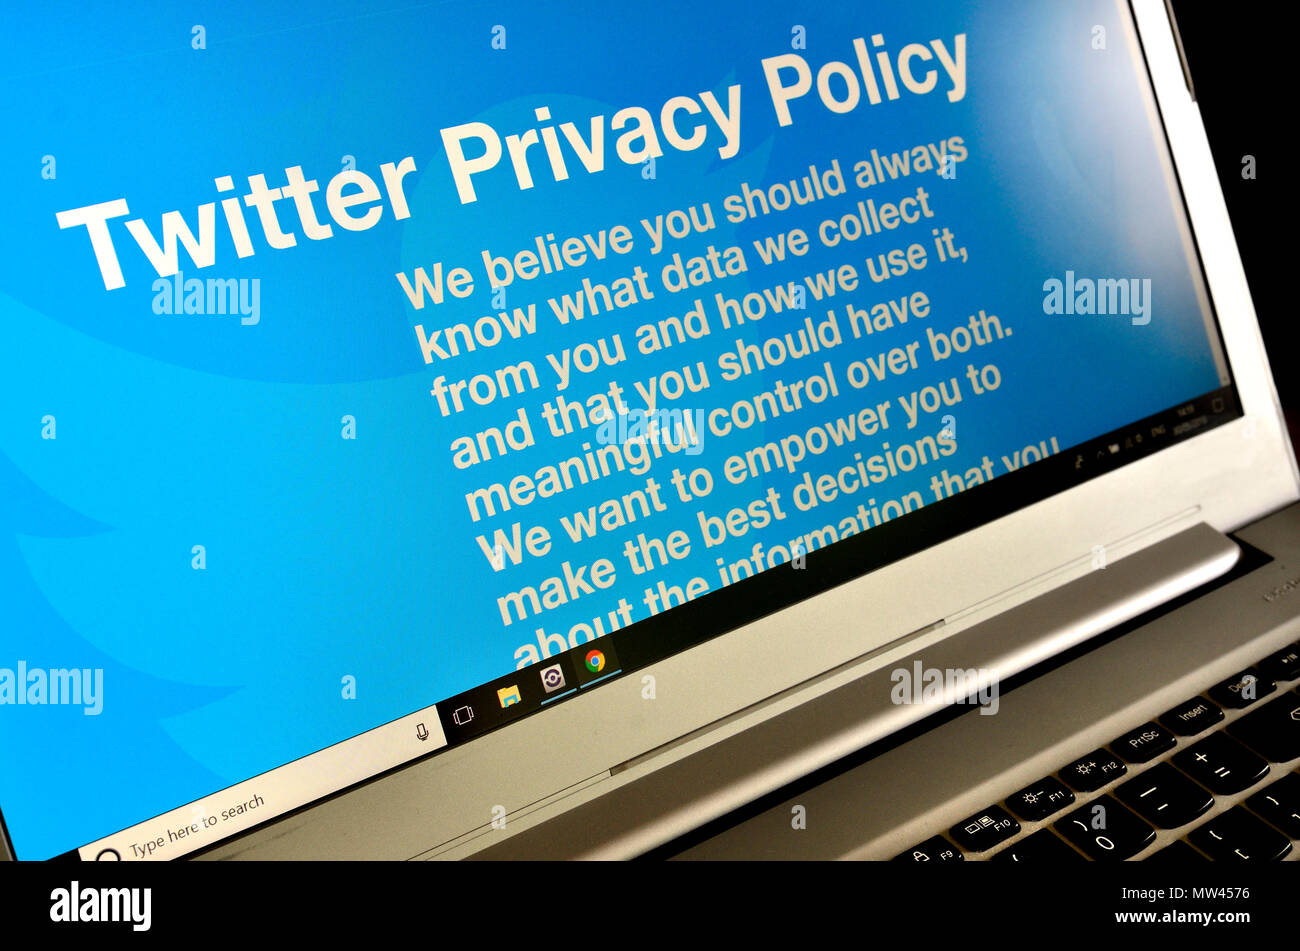 Twitter Privacy Policy page on a laptop (2018) - Stock Image